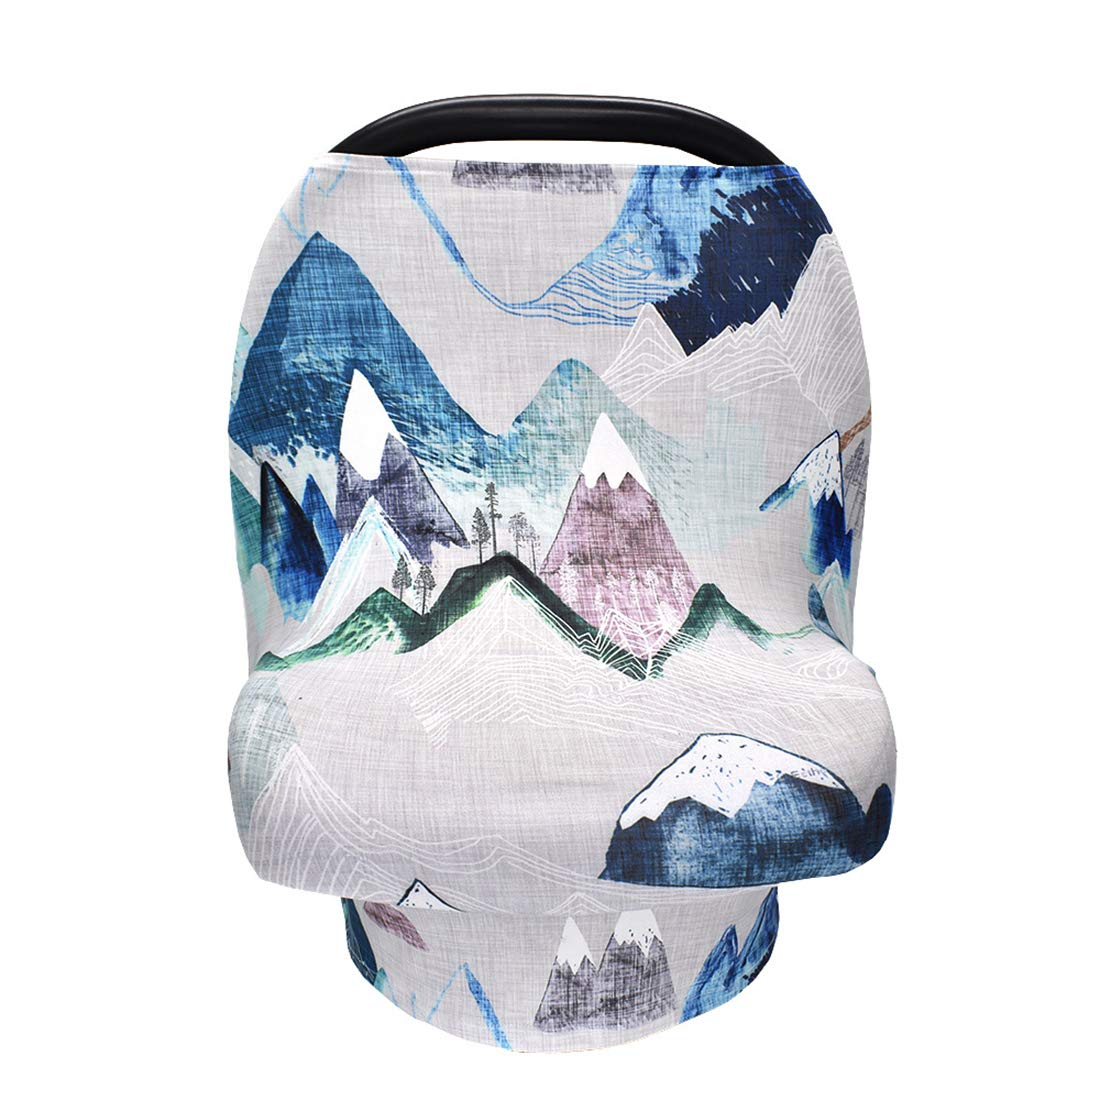 Giggle Angel Stroller Cover Privacy Nursing Cover Baby Carseat Canopy High Chair Cover Nursery Cover Breastfeeding Scarf for Boys and Girls (Blue)